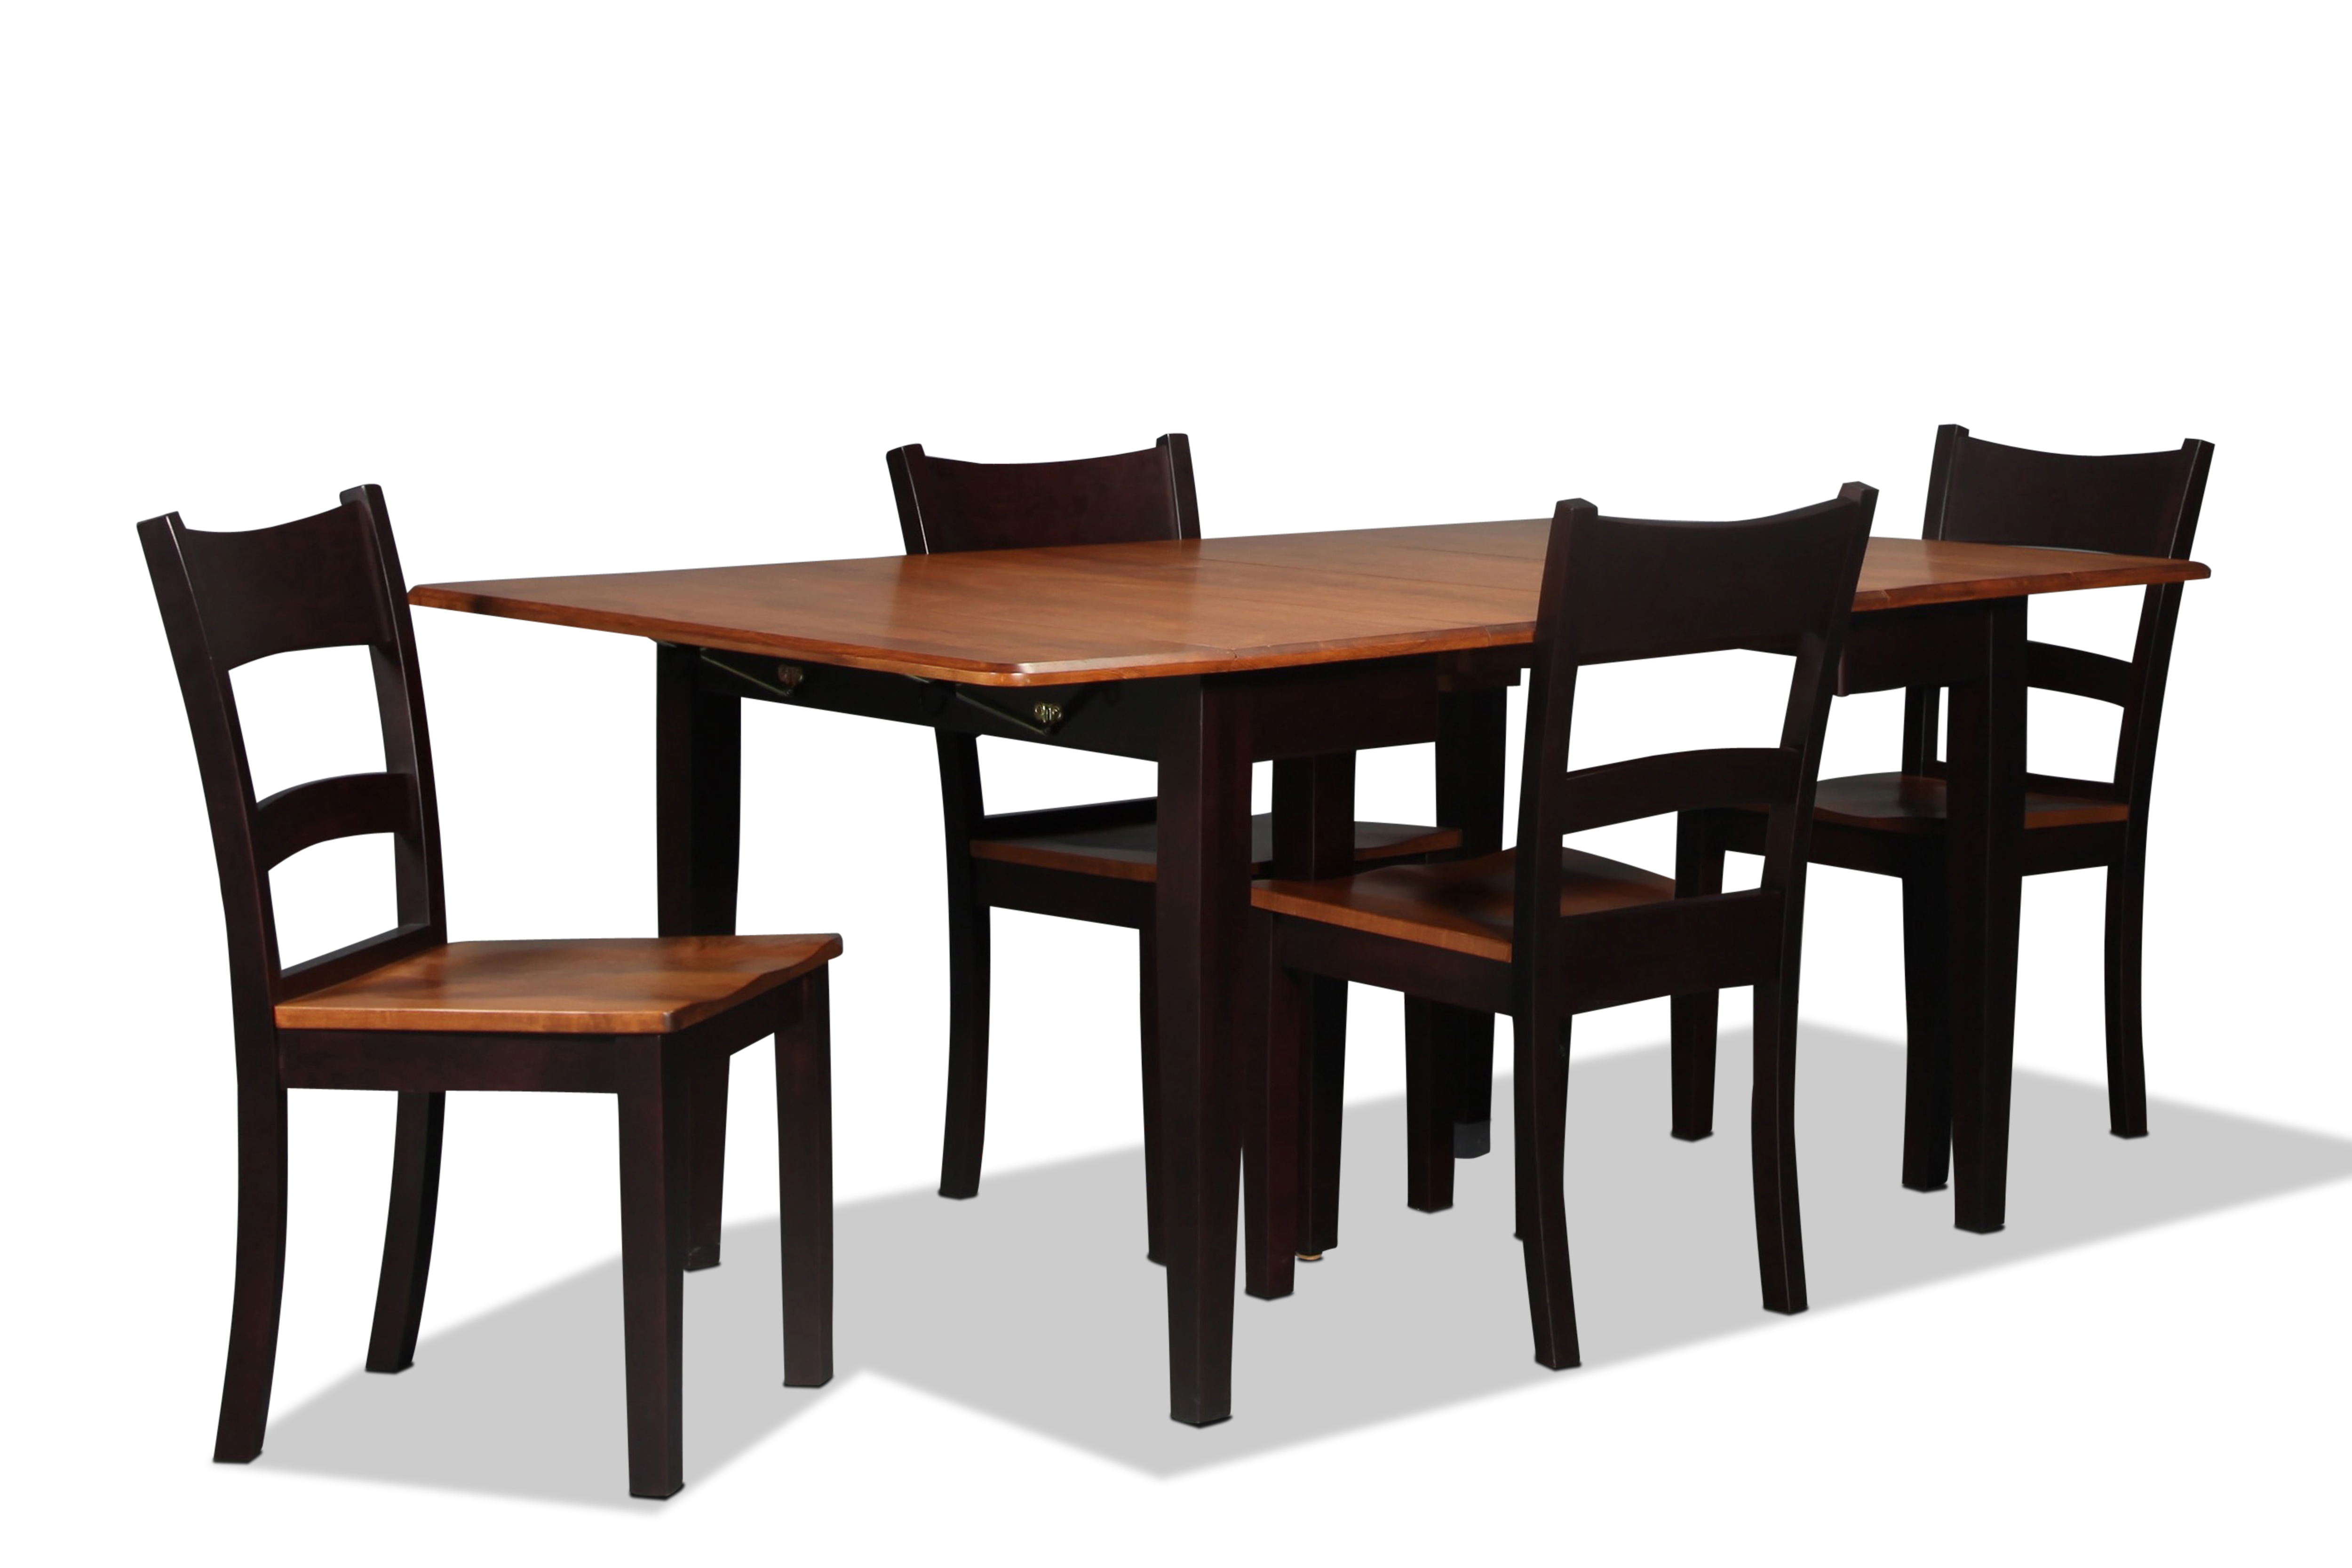 Saber Dining Table and 4 Side Chairs